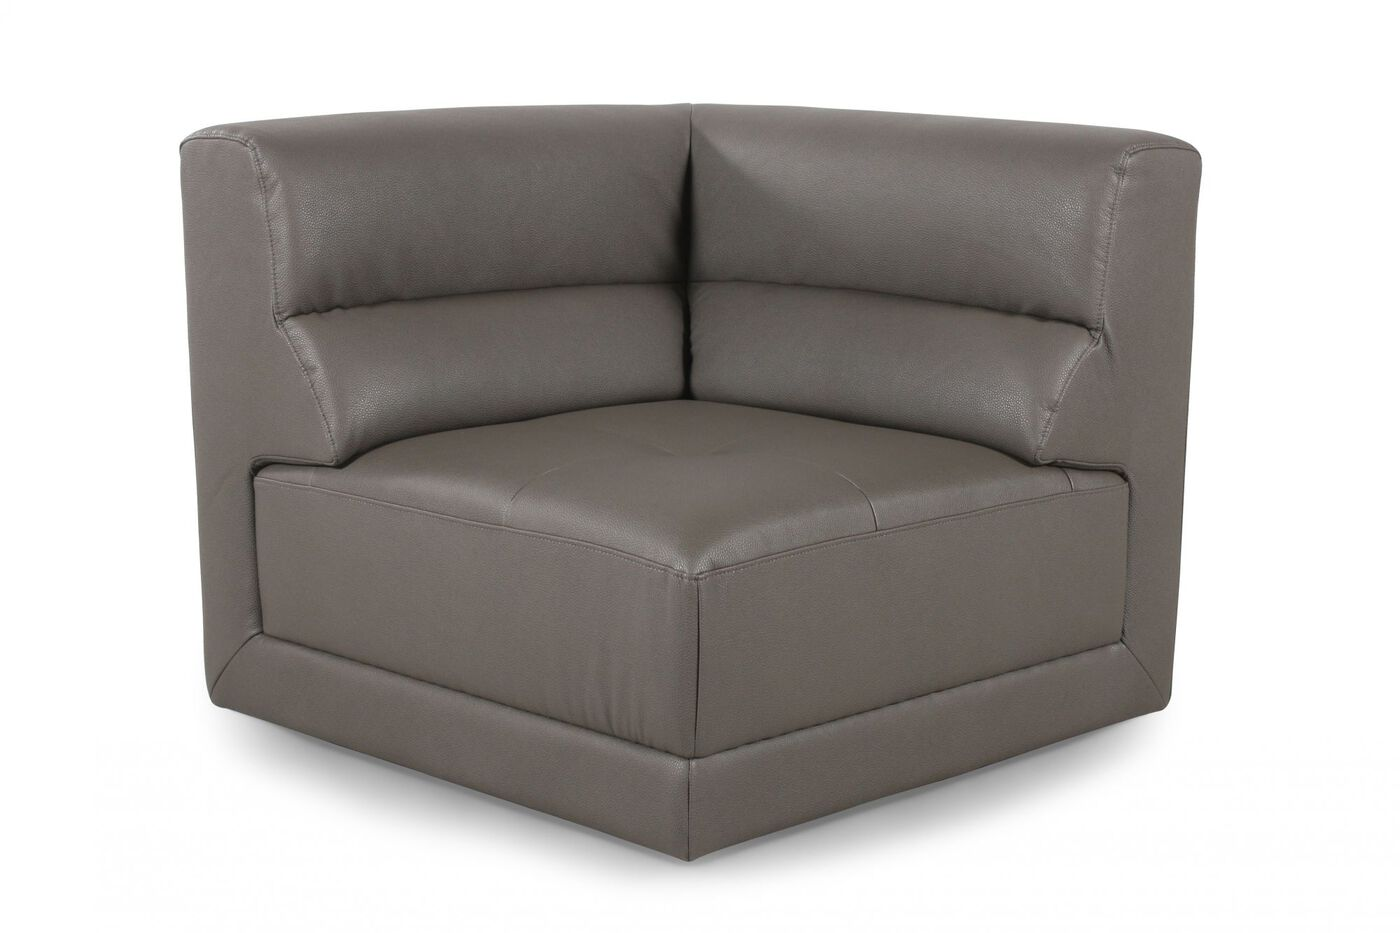 Living Room Corner Chairs: Contemporary Corner Chair In Dove Gray